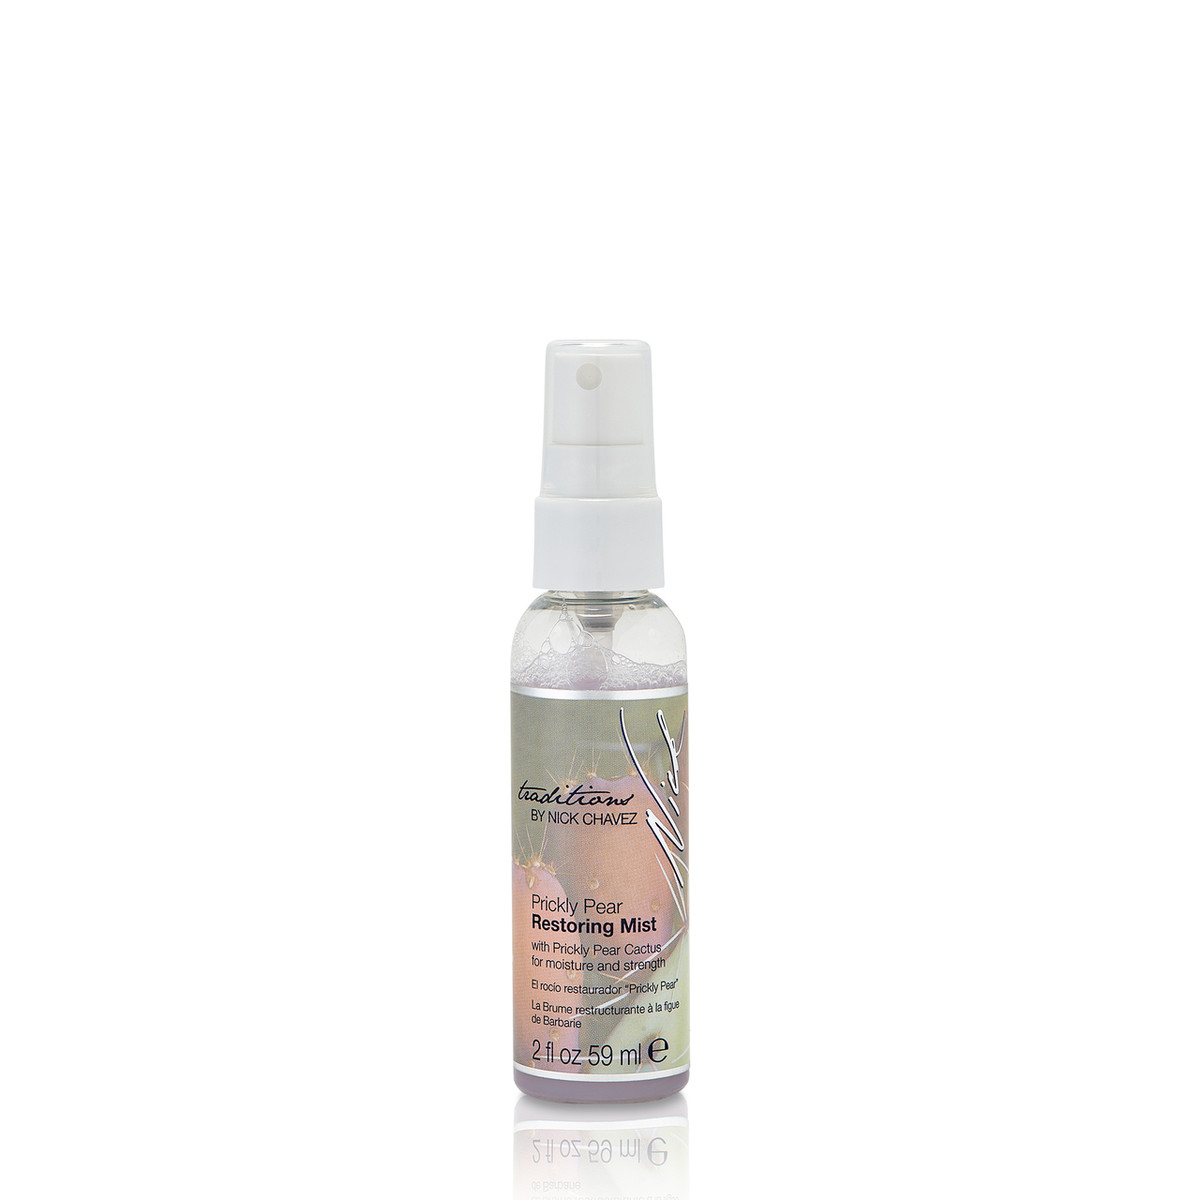 Prickly Pear Strengthening Mist 2oz